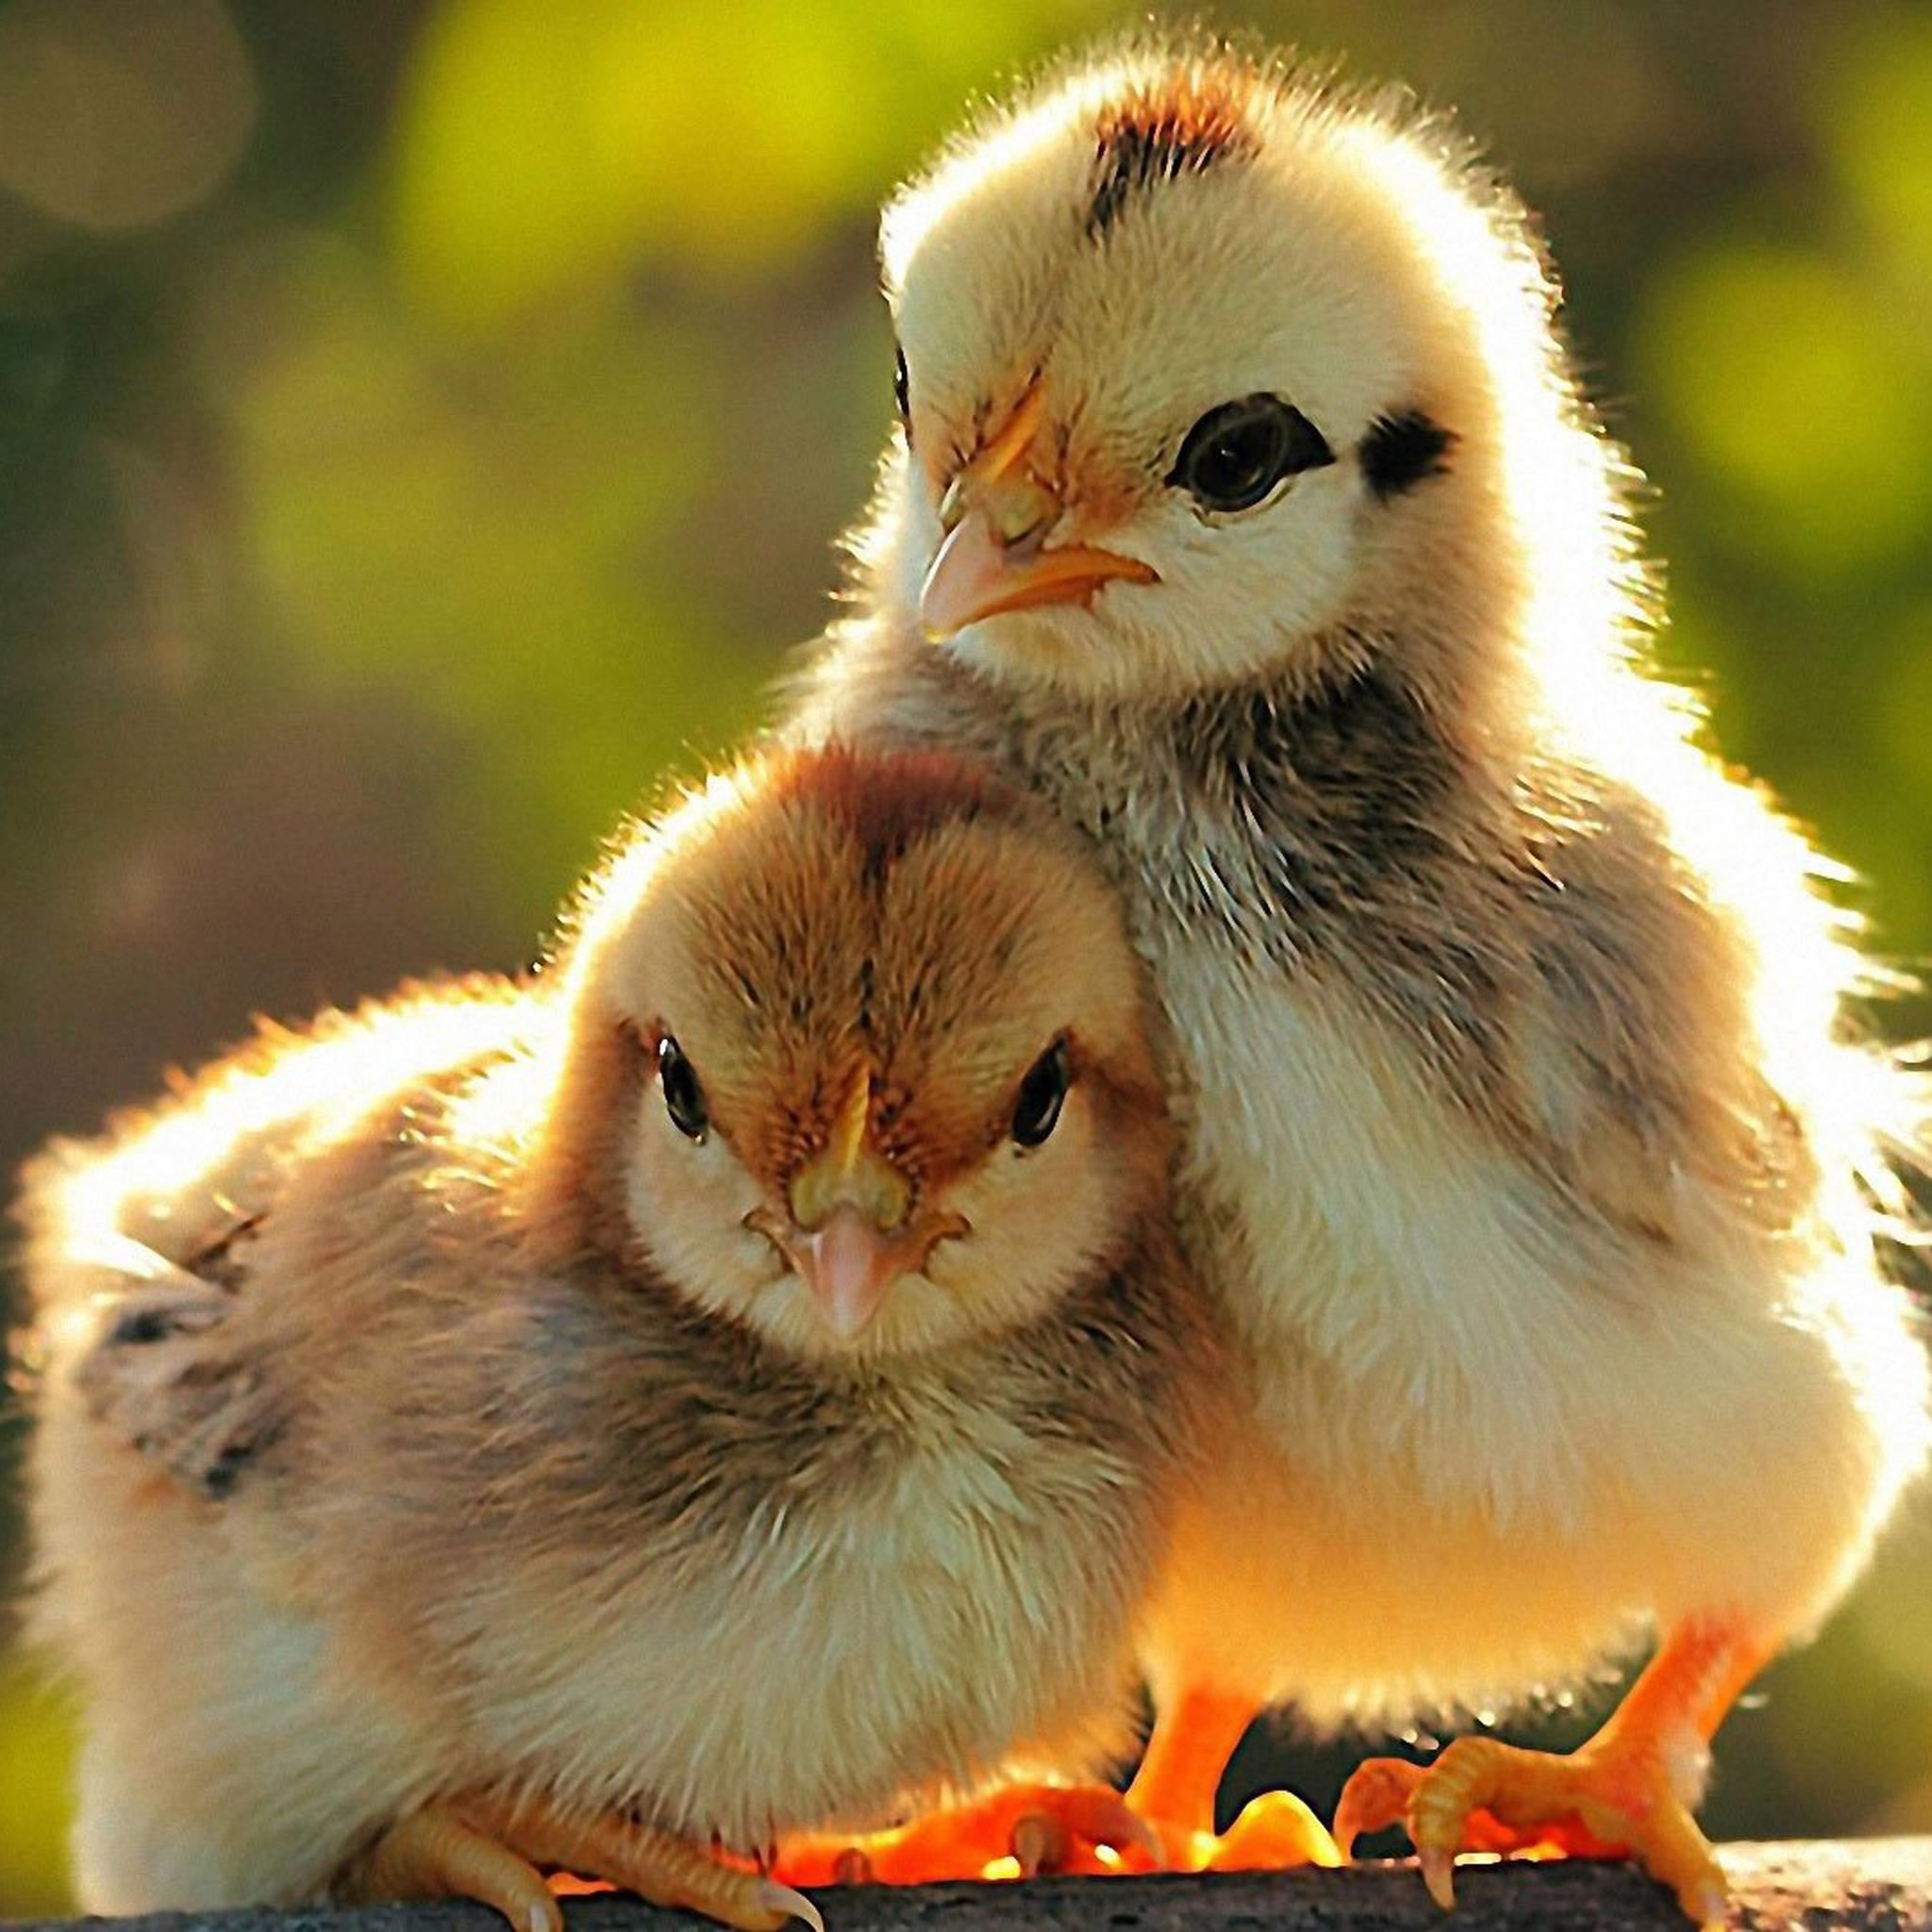 Cute Chicks Under Sunlight iPad Air wallpaper